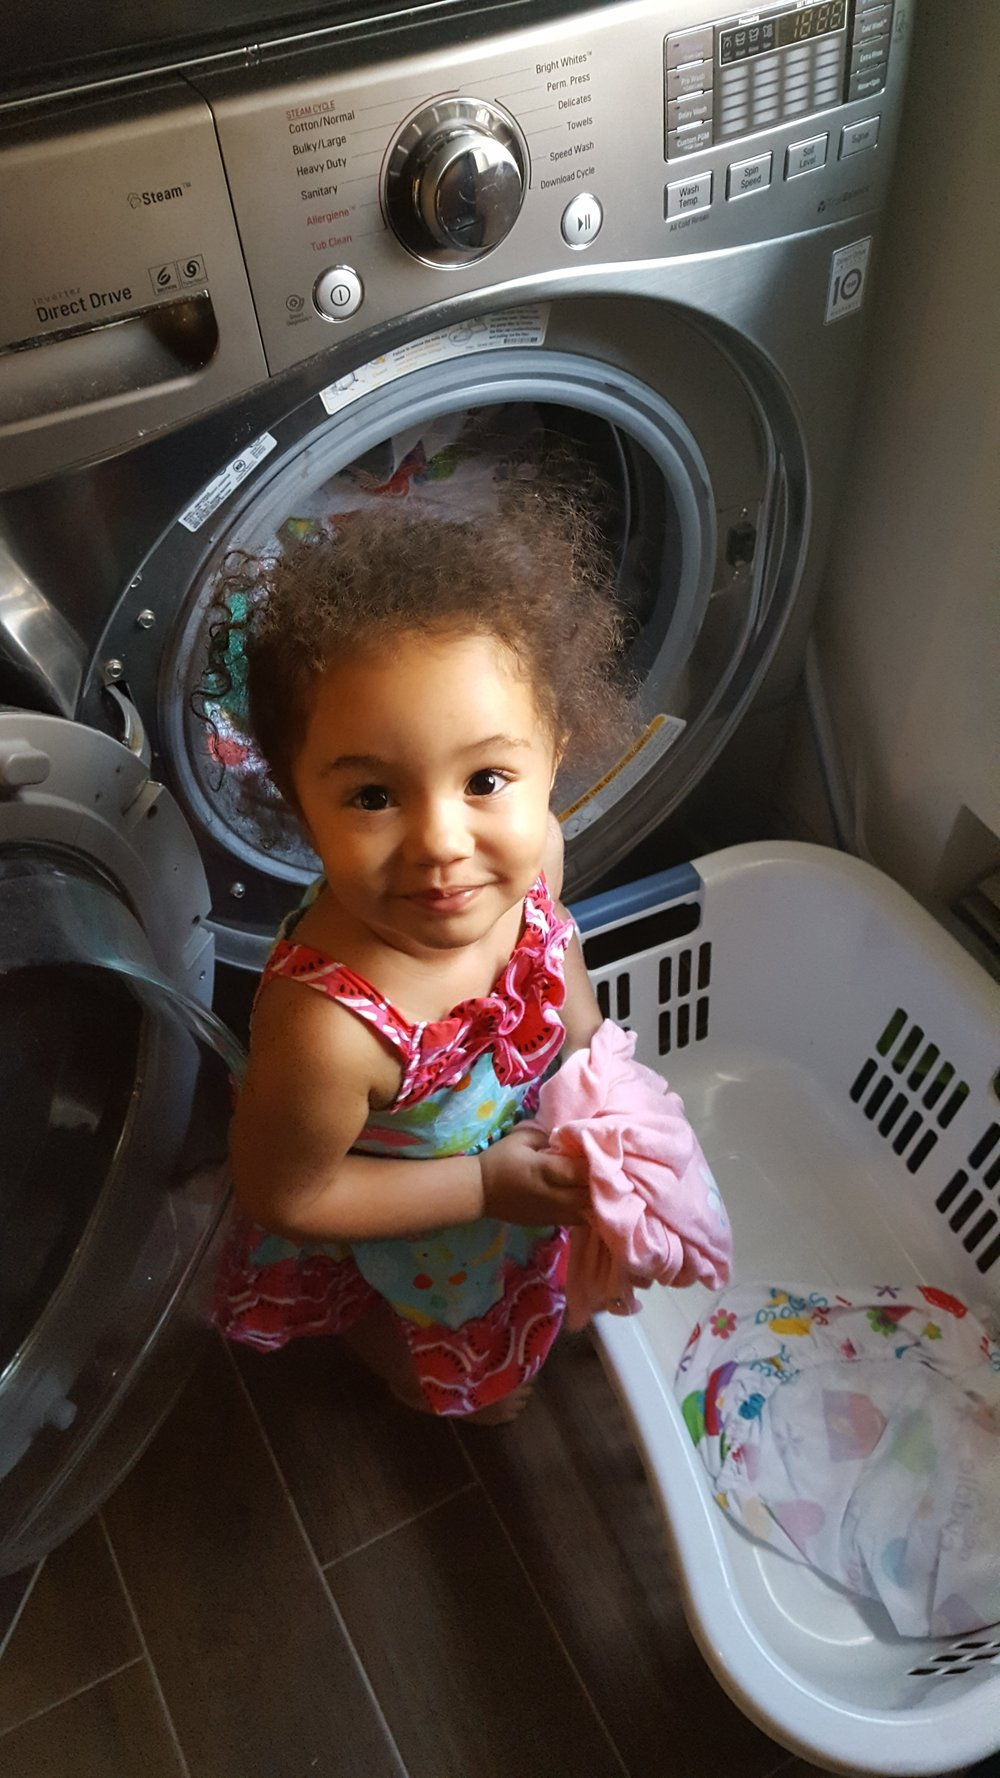 At Least my Oldest Helps with Laundry